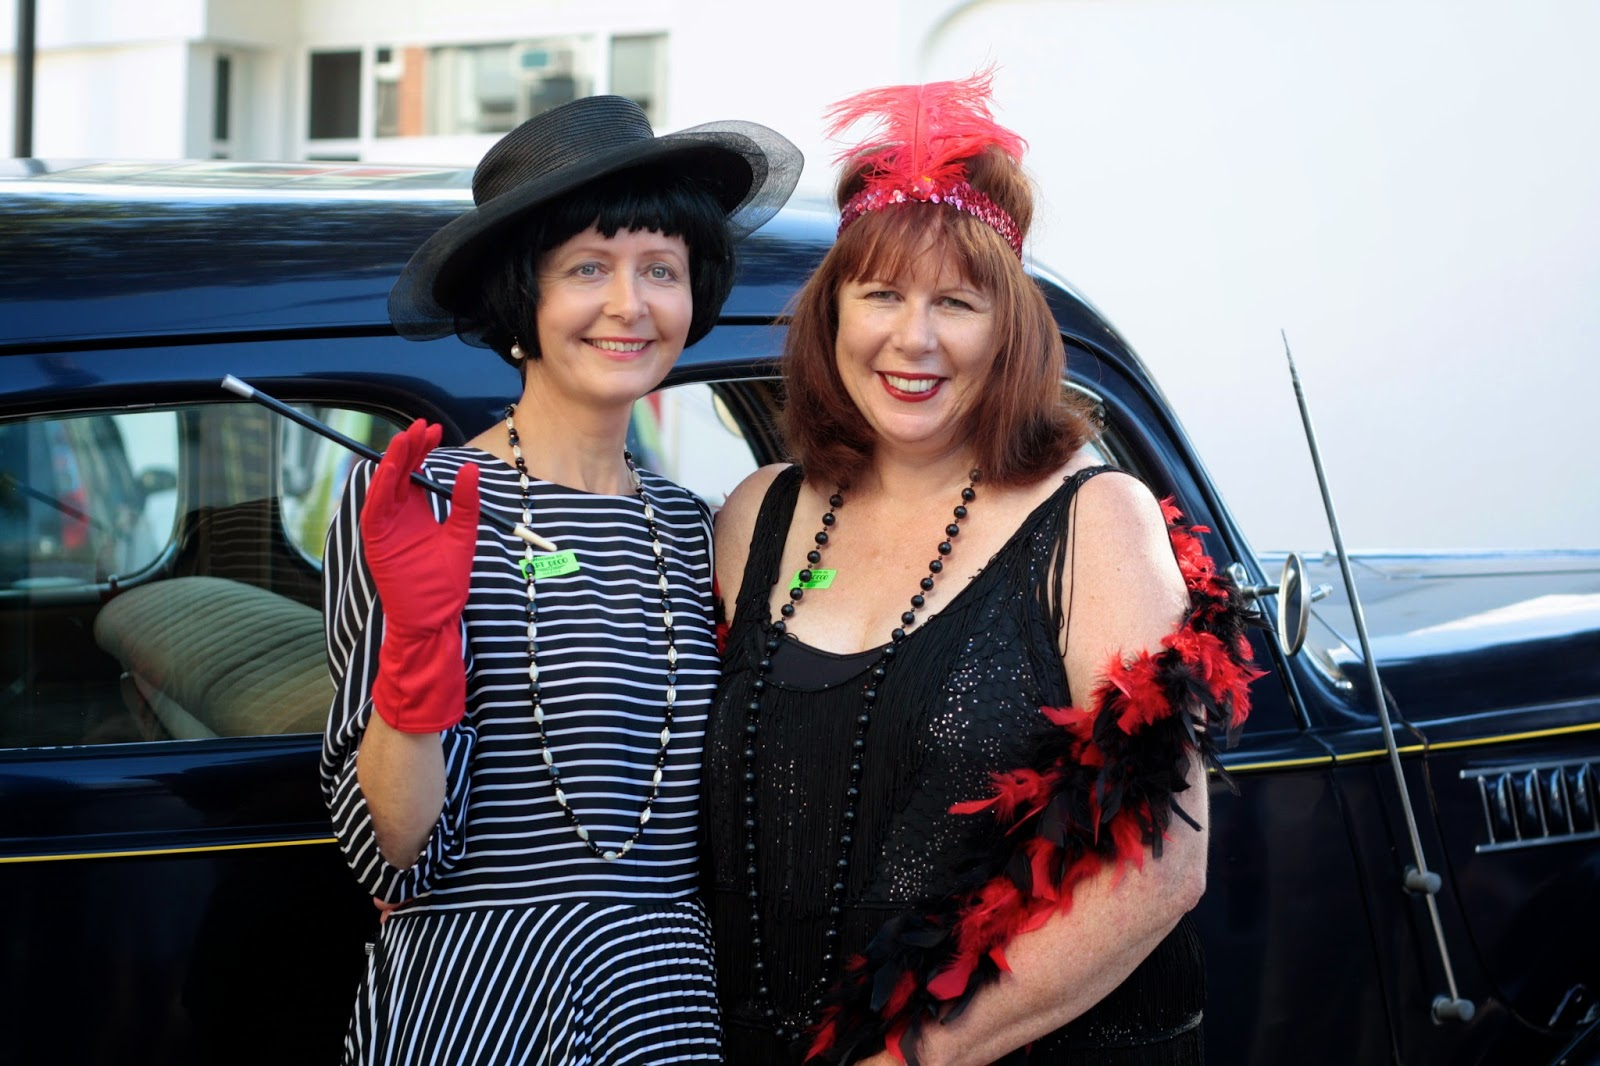 Two women in art deco flapper costume pose in front of a vintage car. One has a cigarette holder.